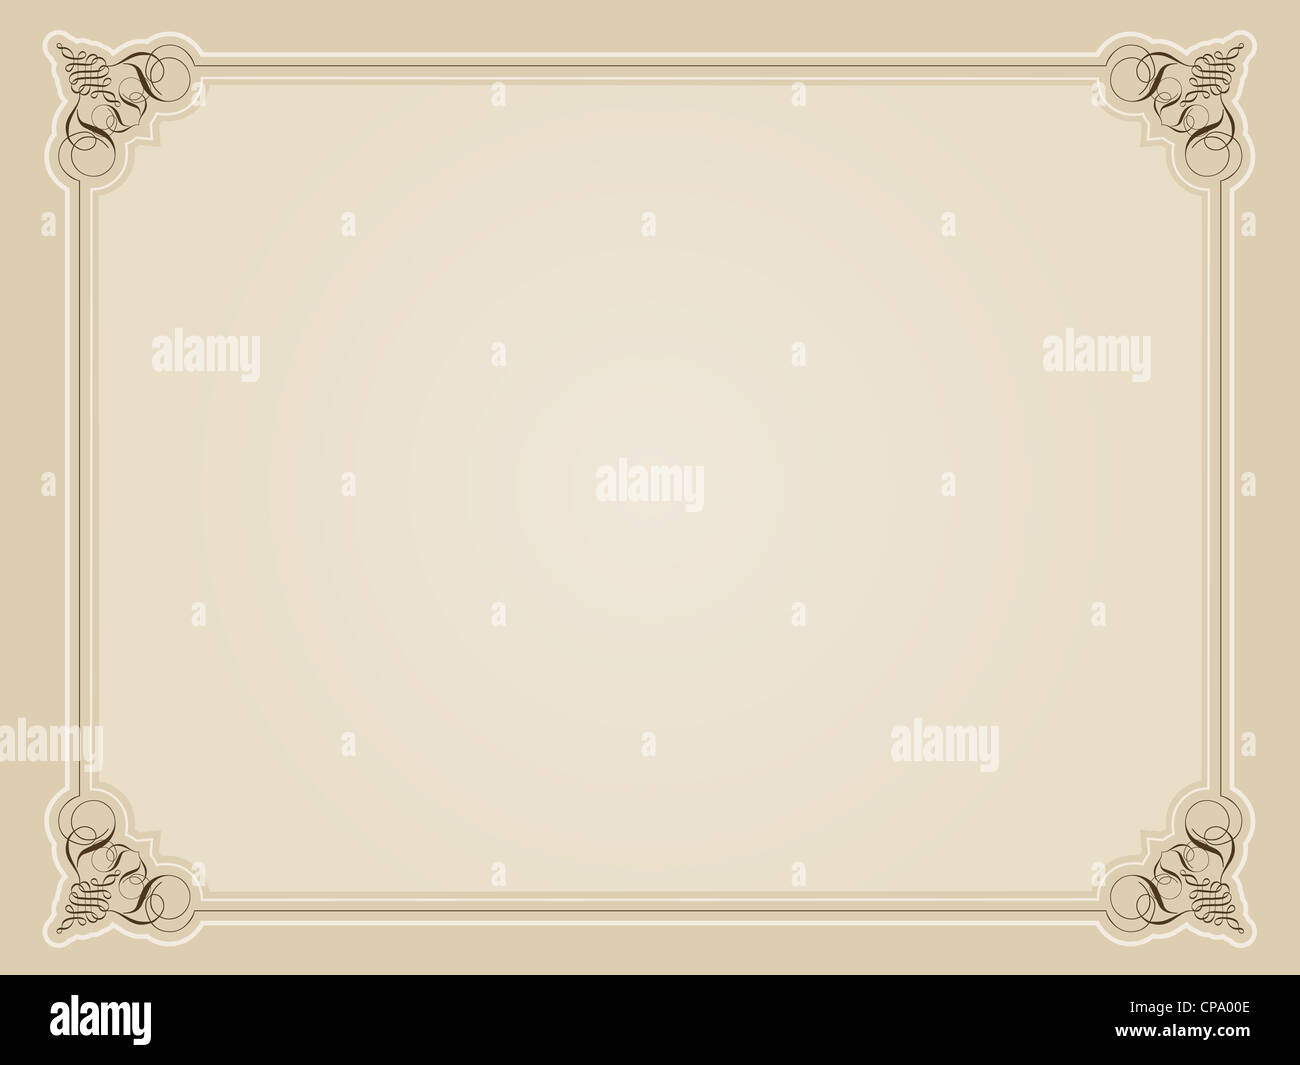 vintage style decorative border in sepia tones stock image